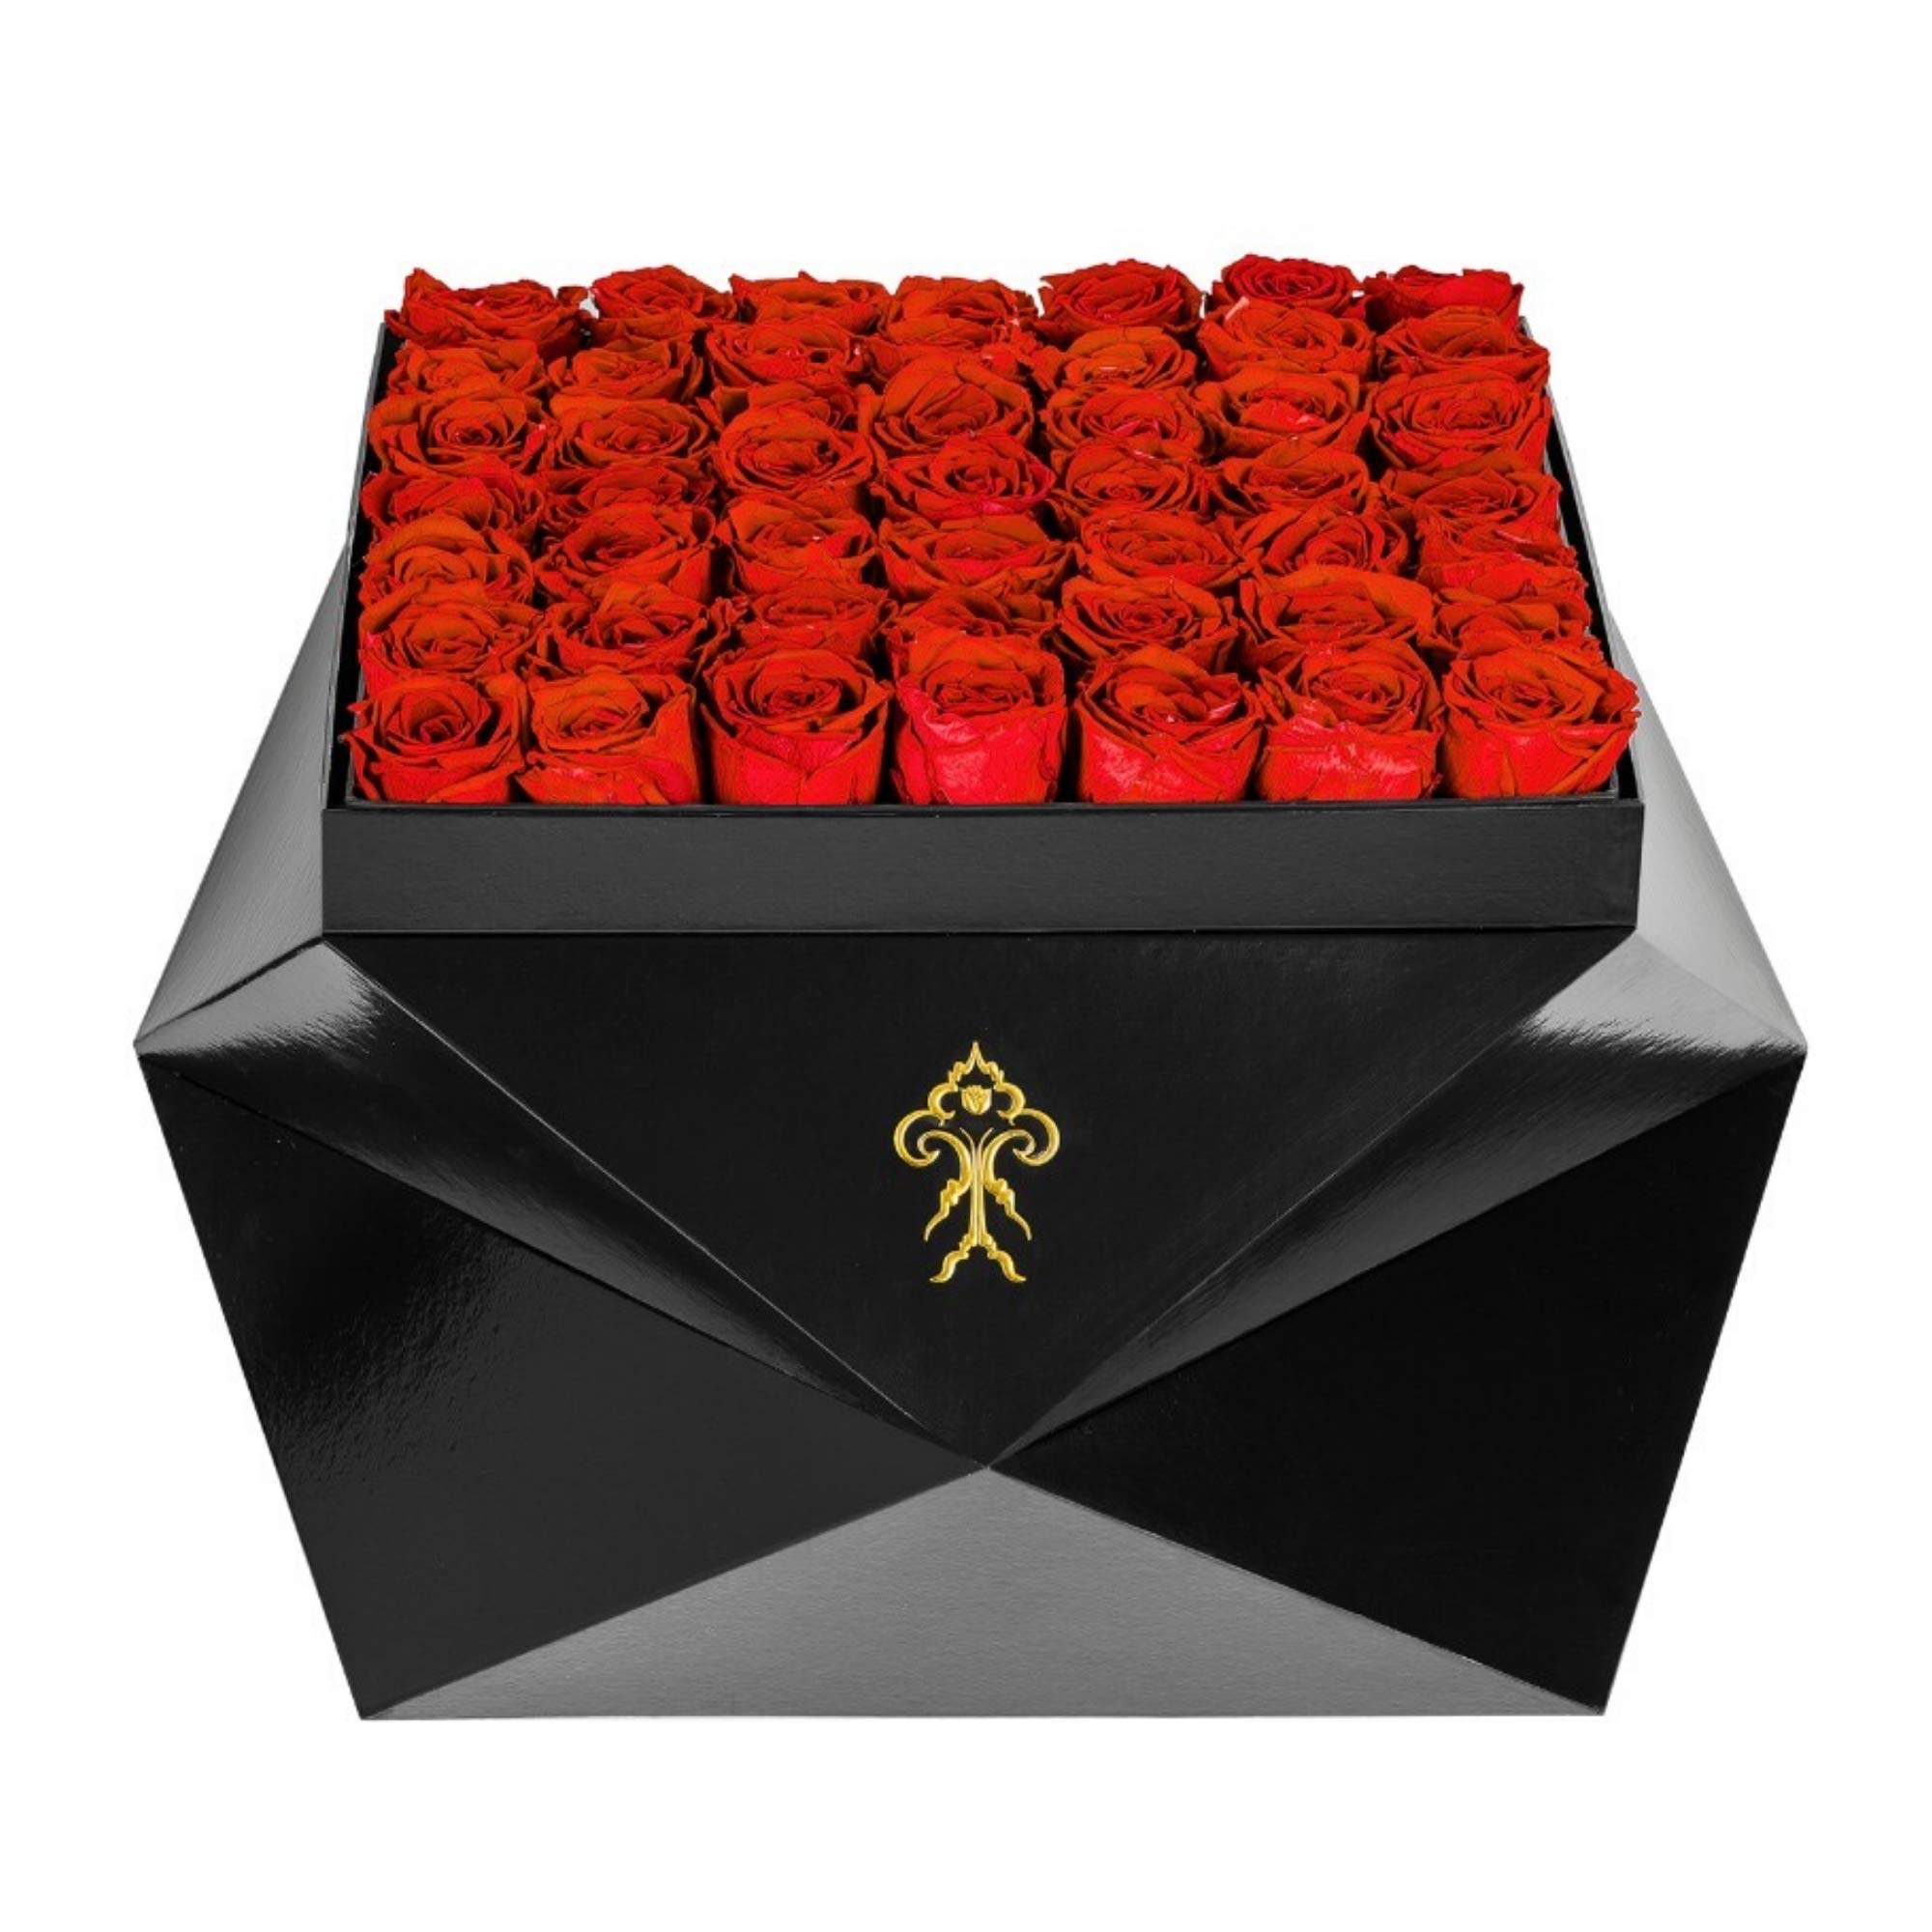 Premium Roses| Real Roses That Last 365 Days | Real Flowers| Roses in a Box (Model Z, Large)